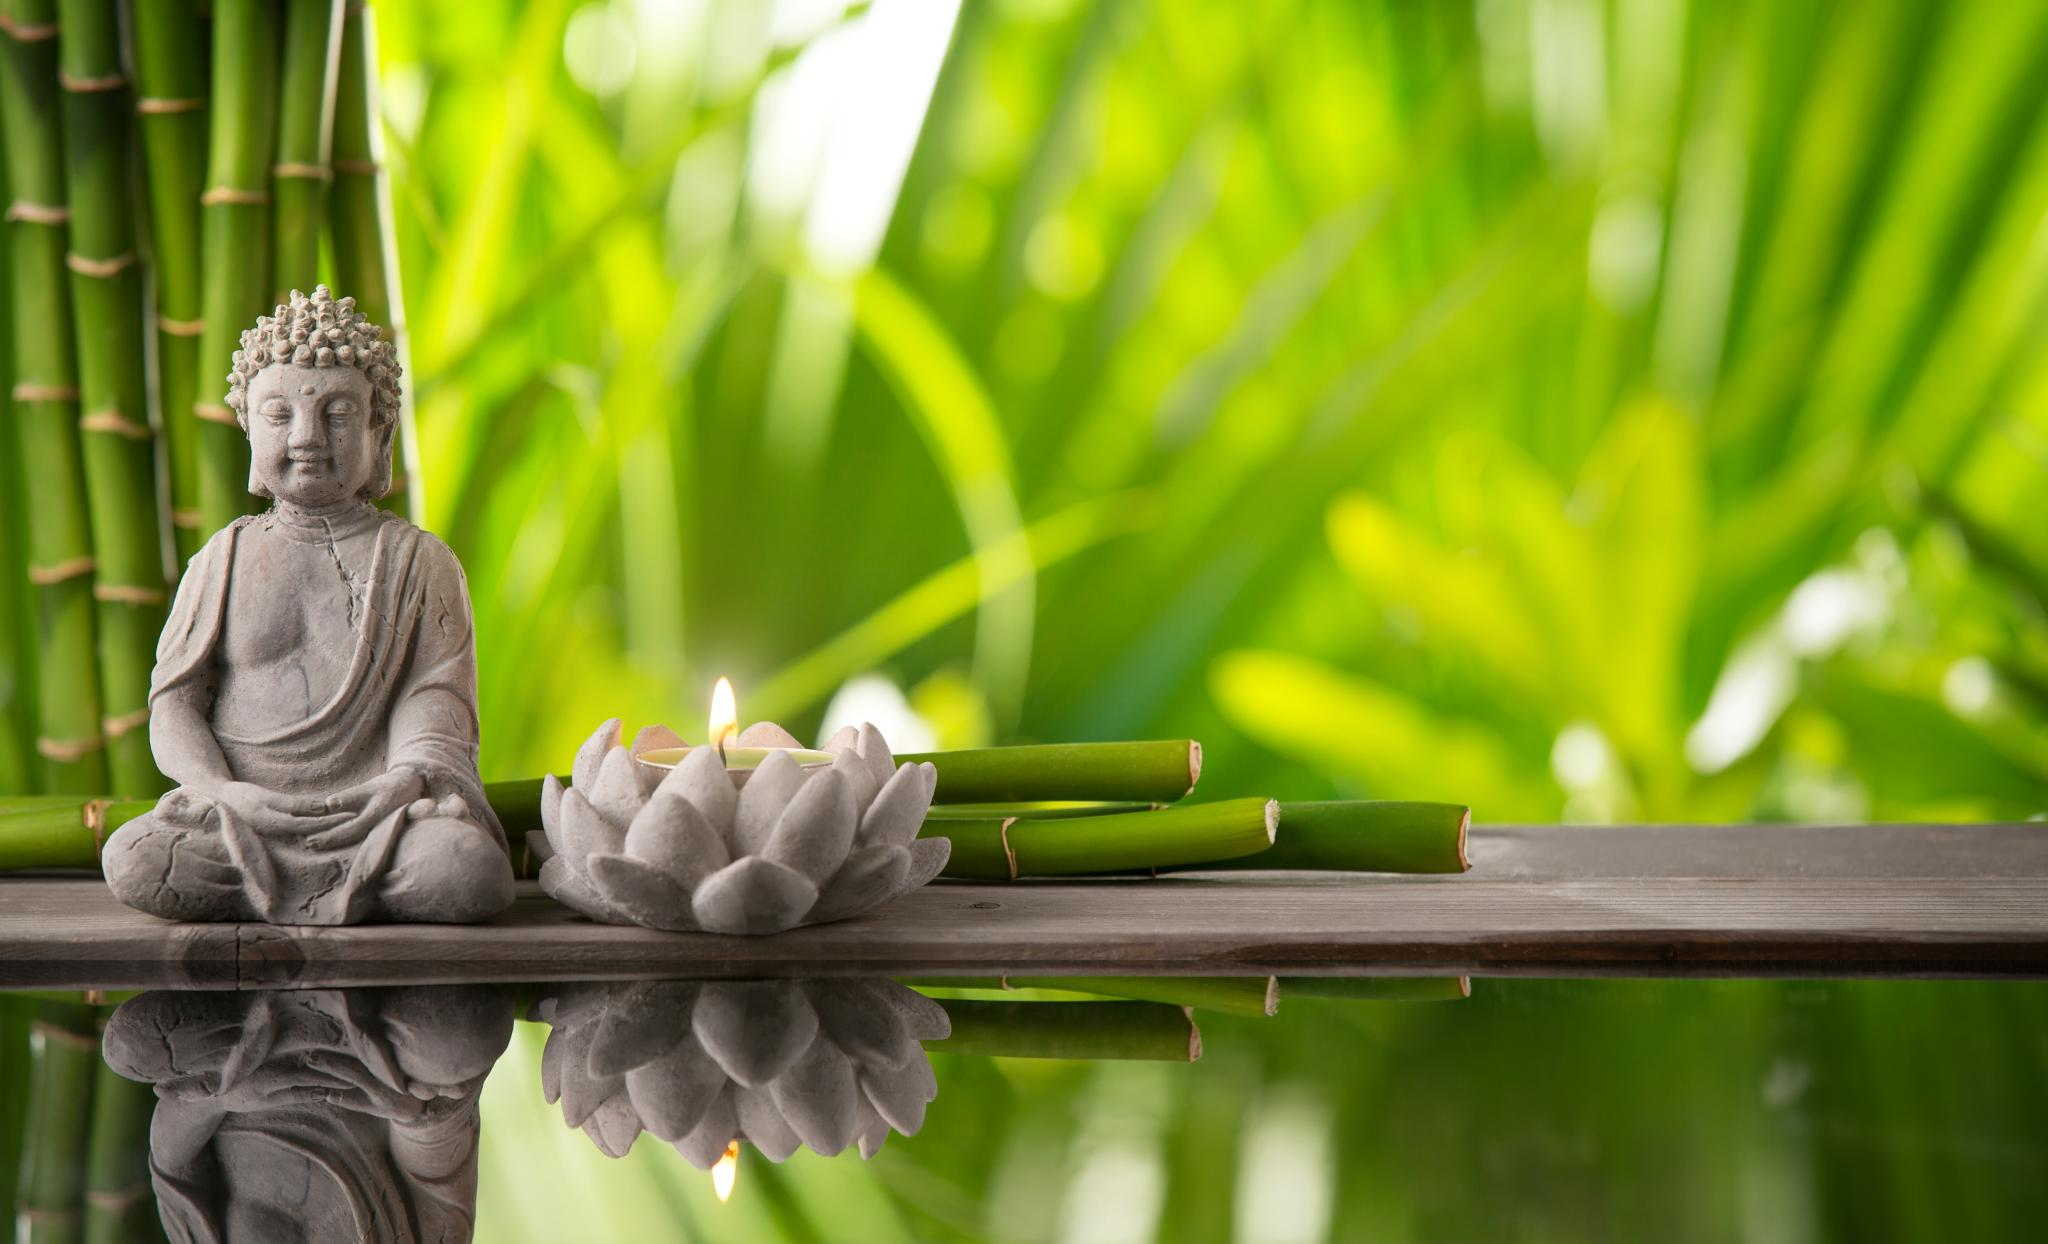 Buddha in bamboo garden. Information about acupuncture.